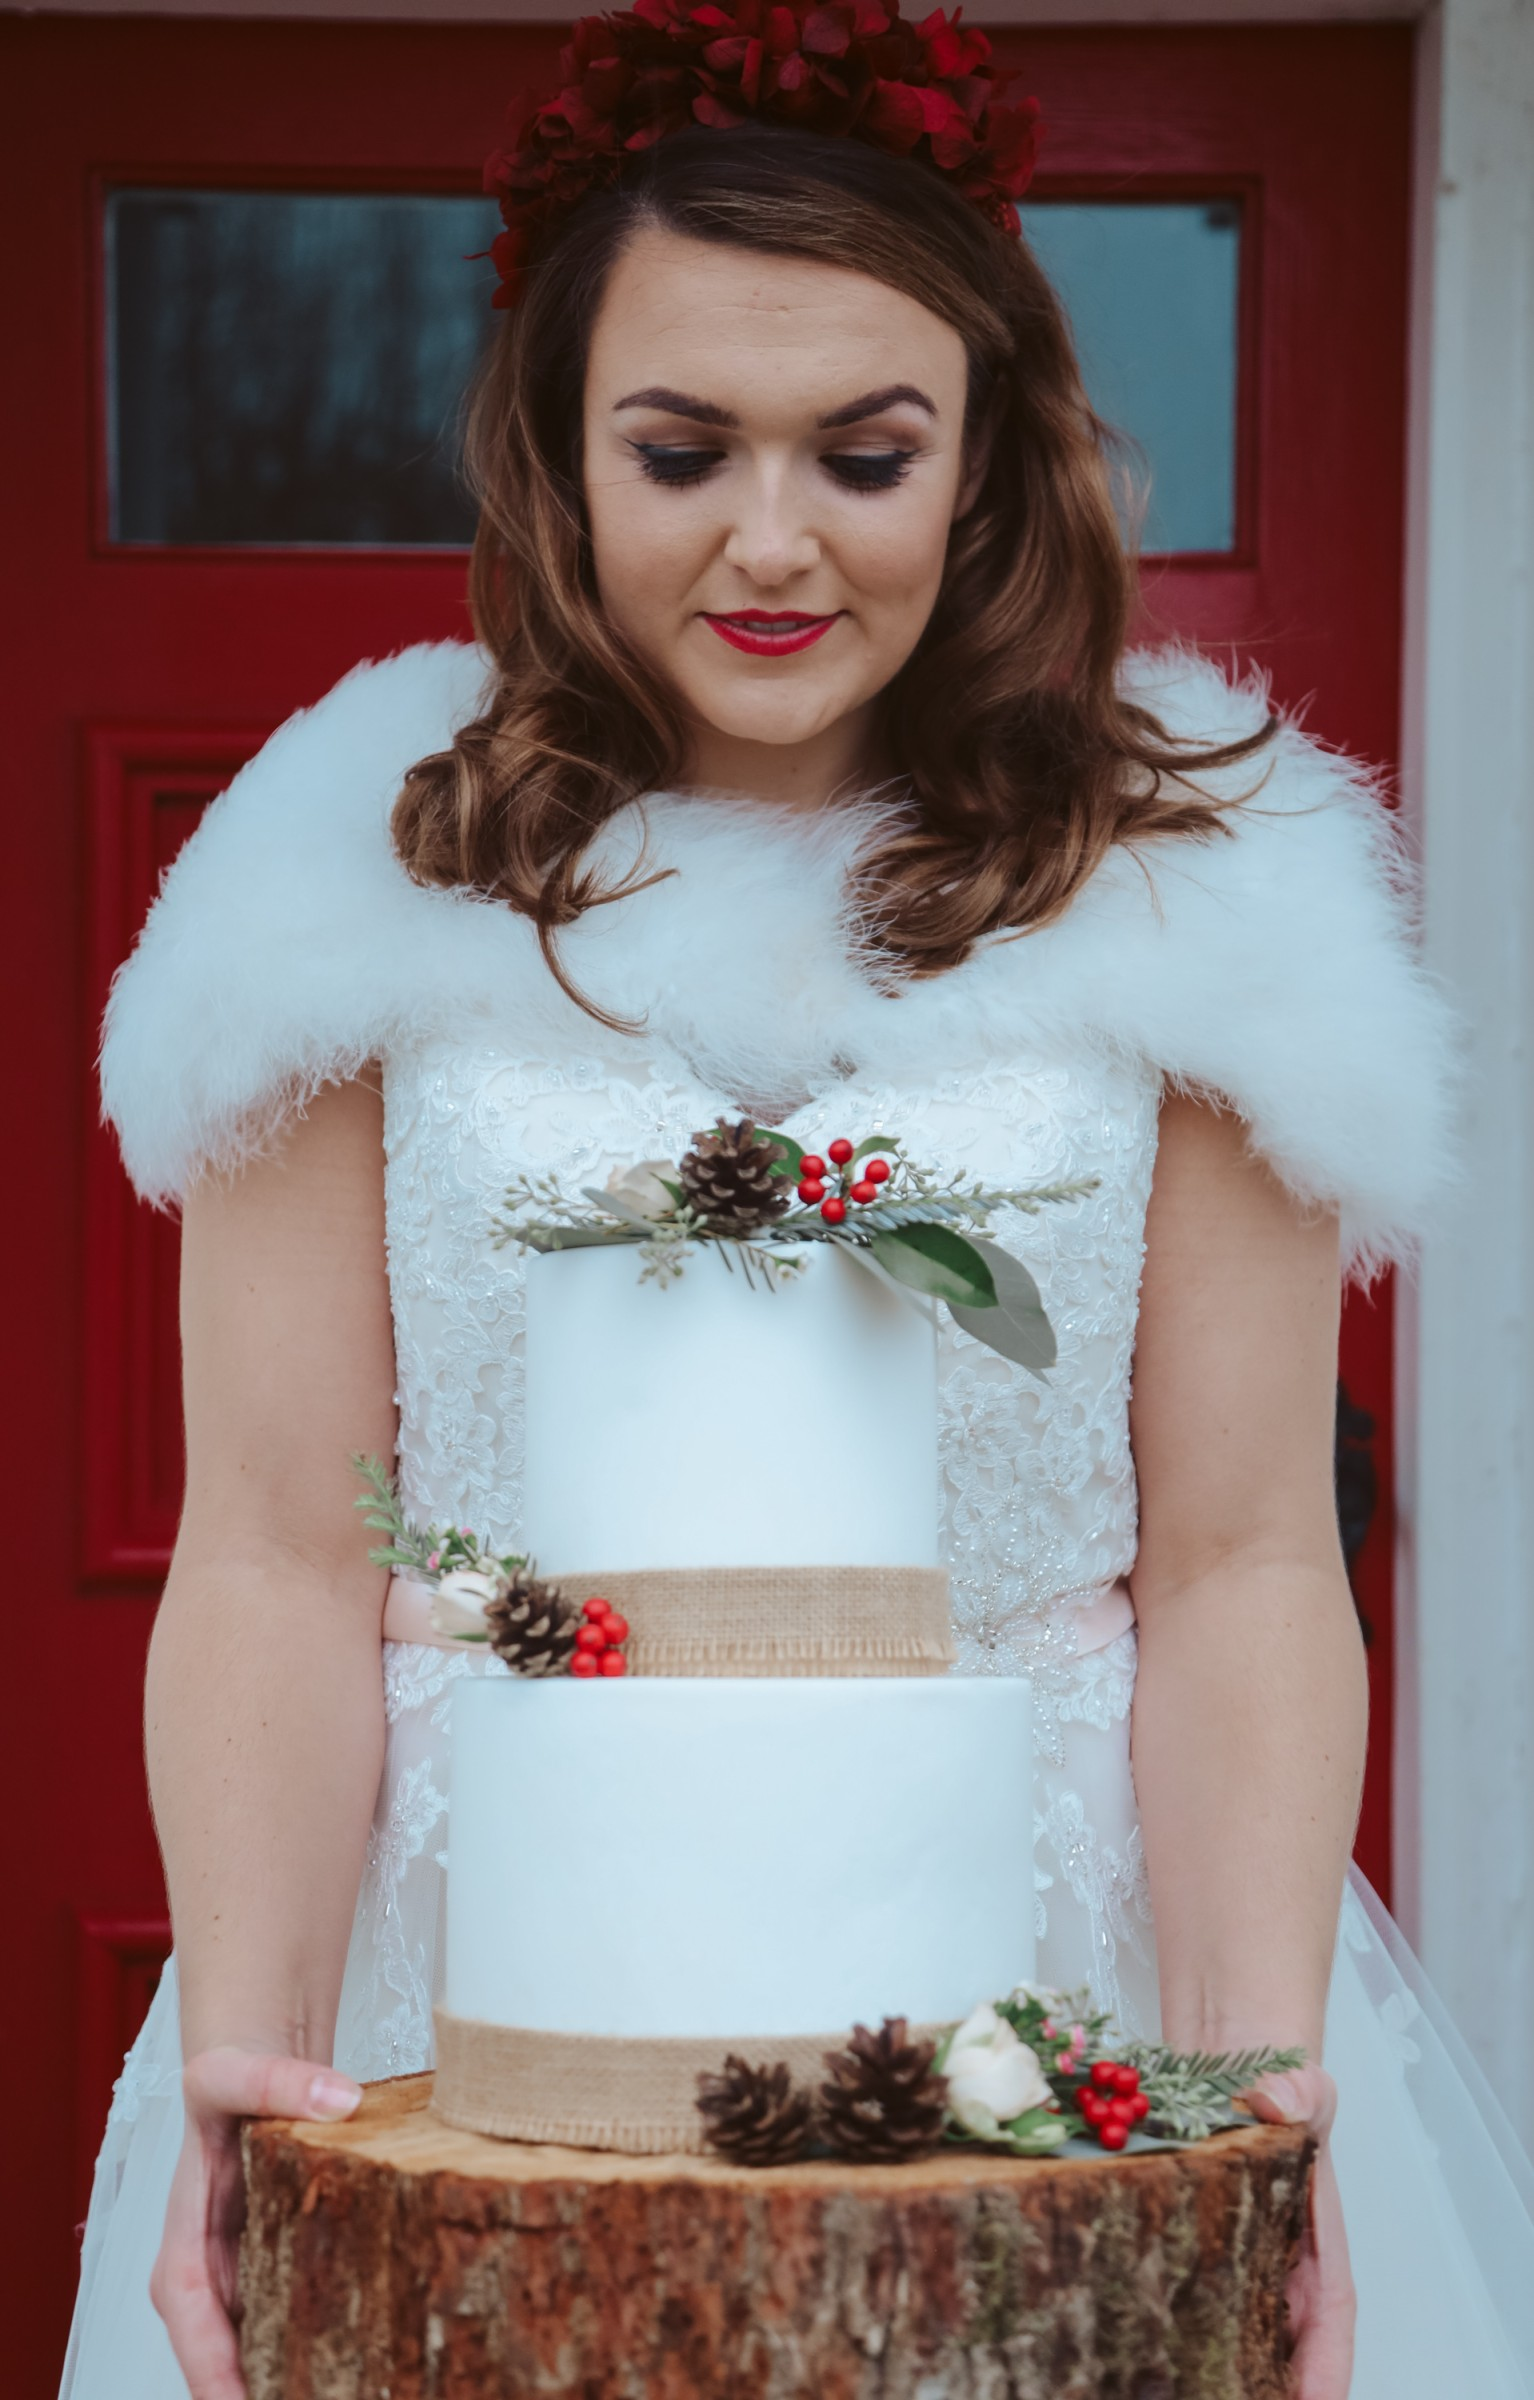 Great Betley Farmhouse wedding venue - Christmas micro wedding - christmas wedding - nhs wedding (4)